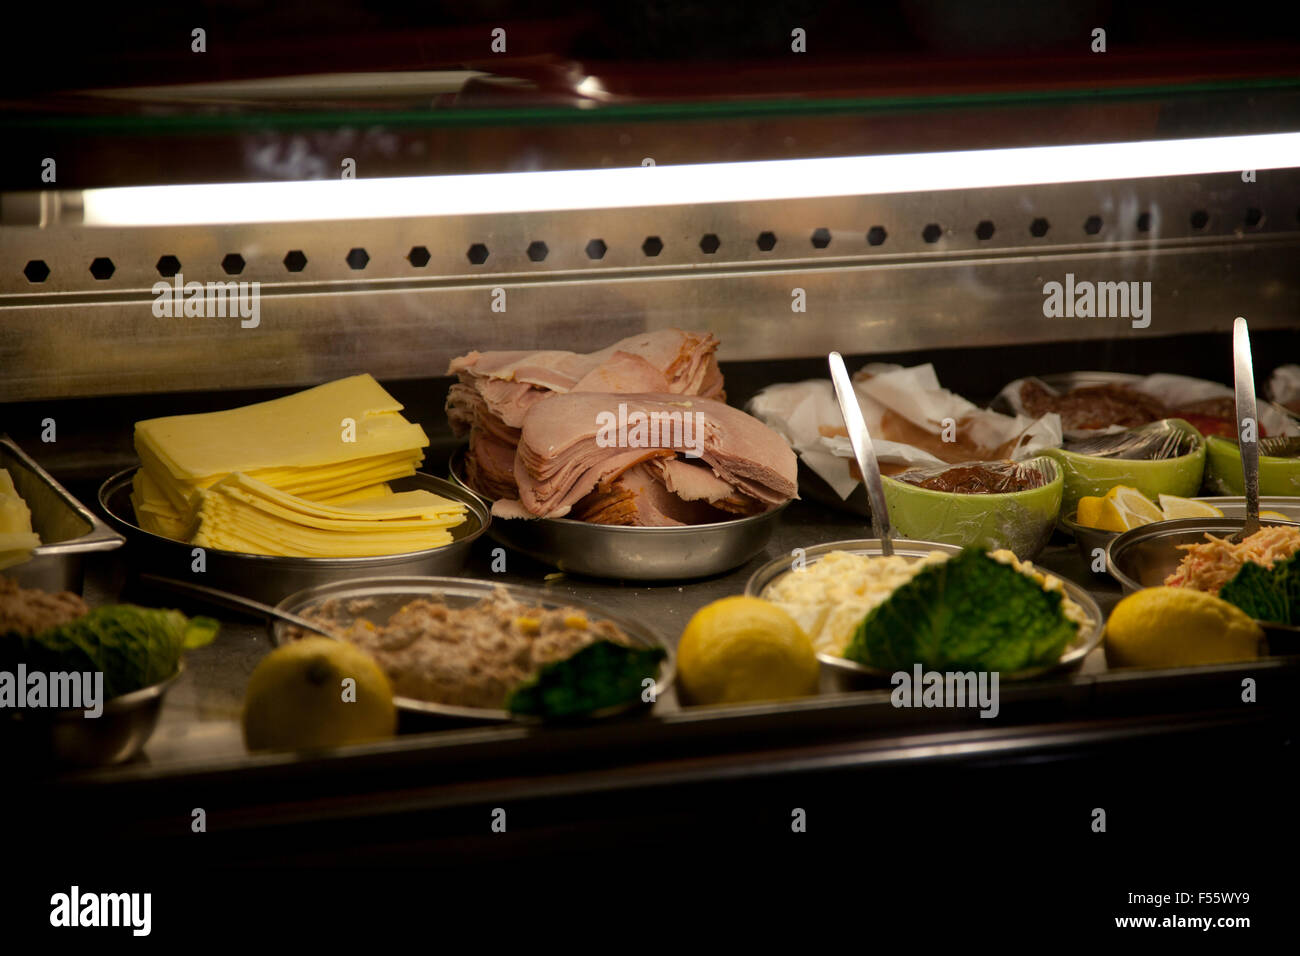 Sandwich Bar display of Food; salad, meats and fillings - Stock Image